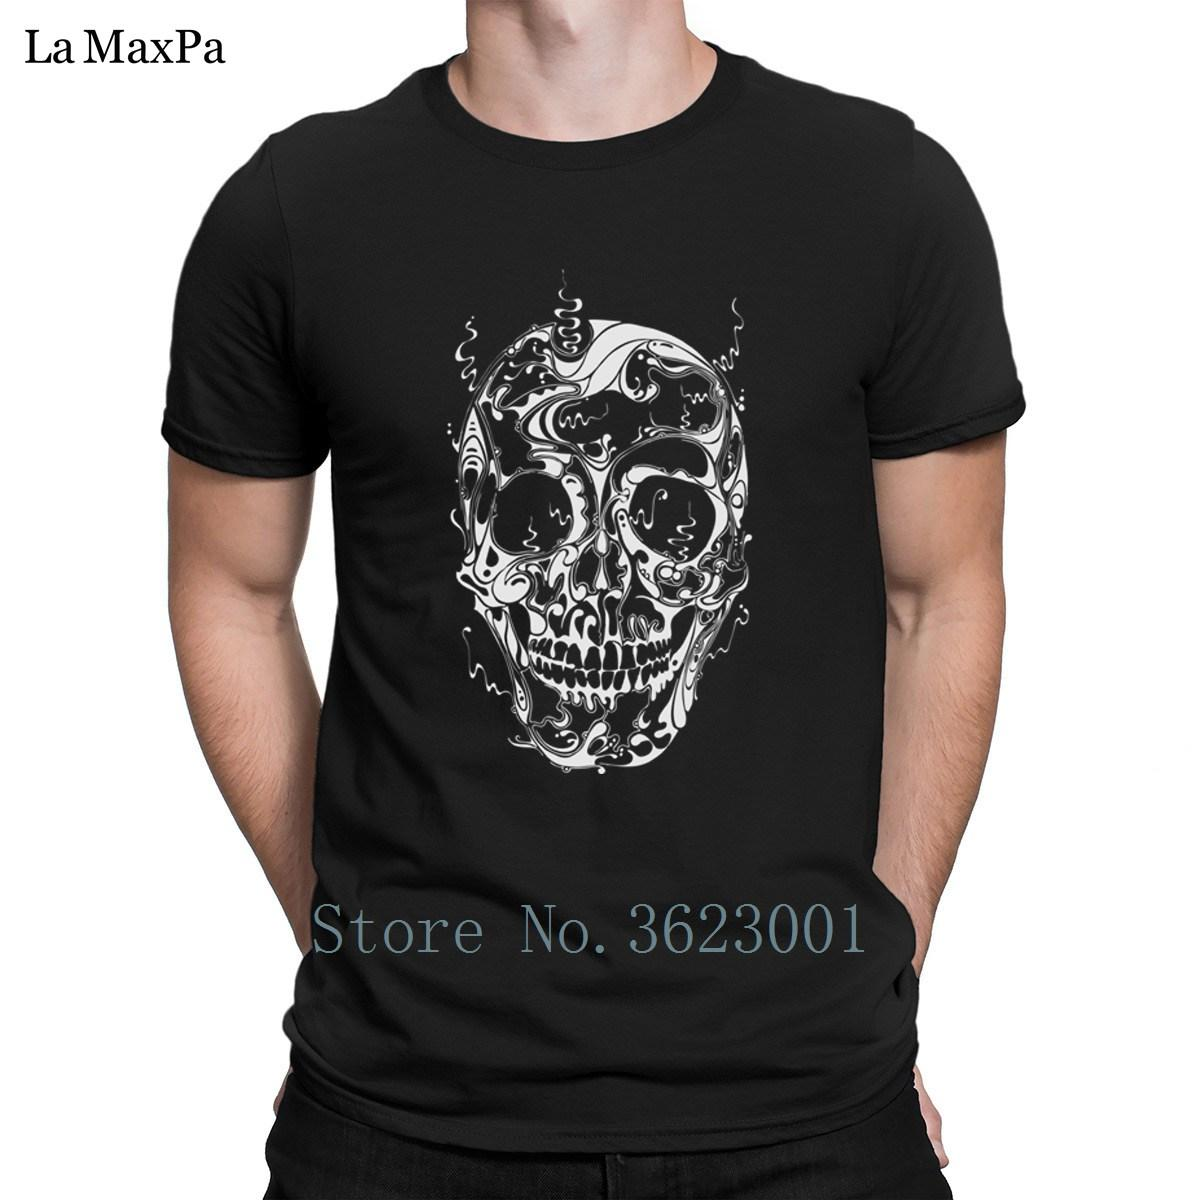 Design New Fashion Men's T Shirt Skull One T-Shirt For Men Novelty Tee Shirt Man Unique Tshirt Size S-3xl HipHop Top